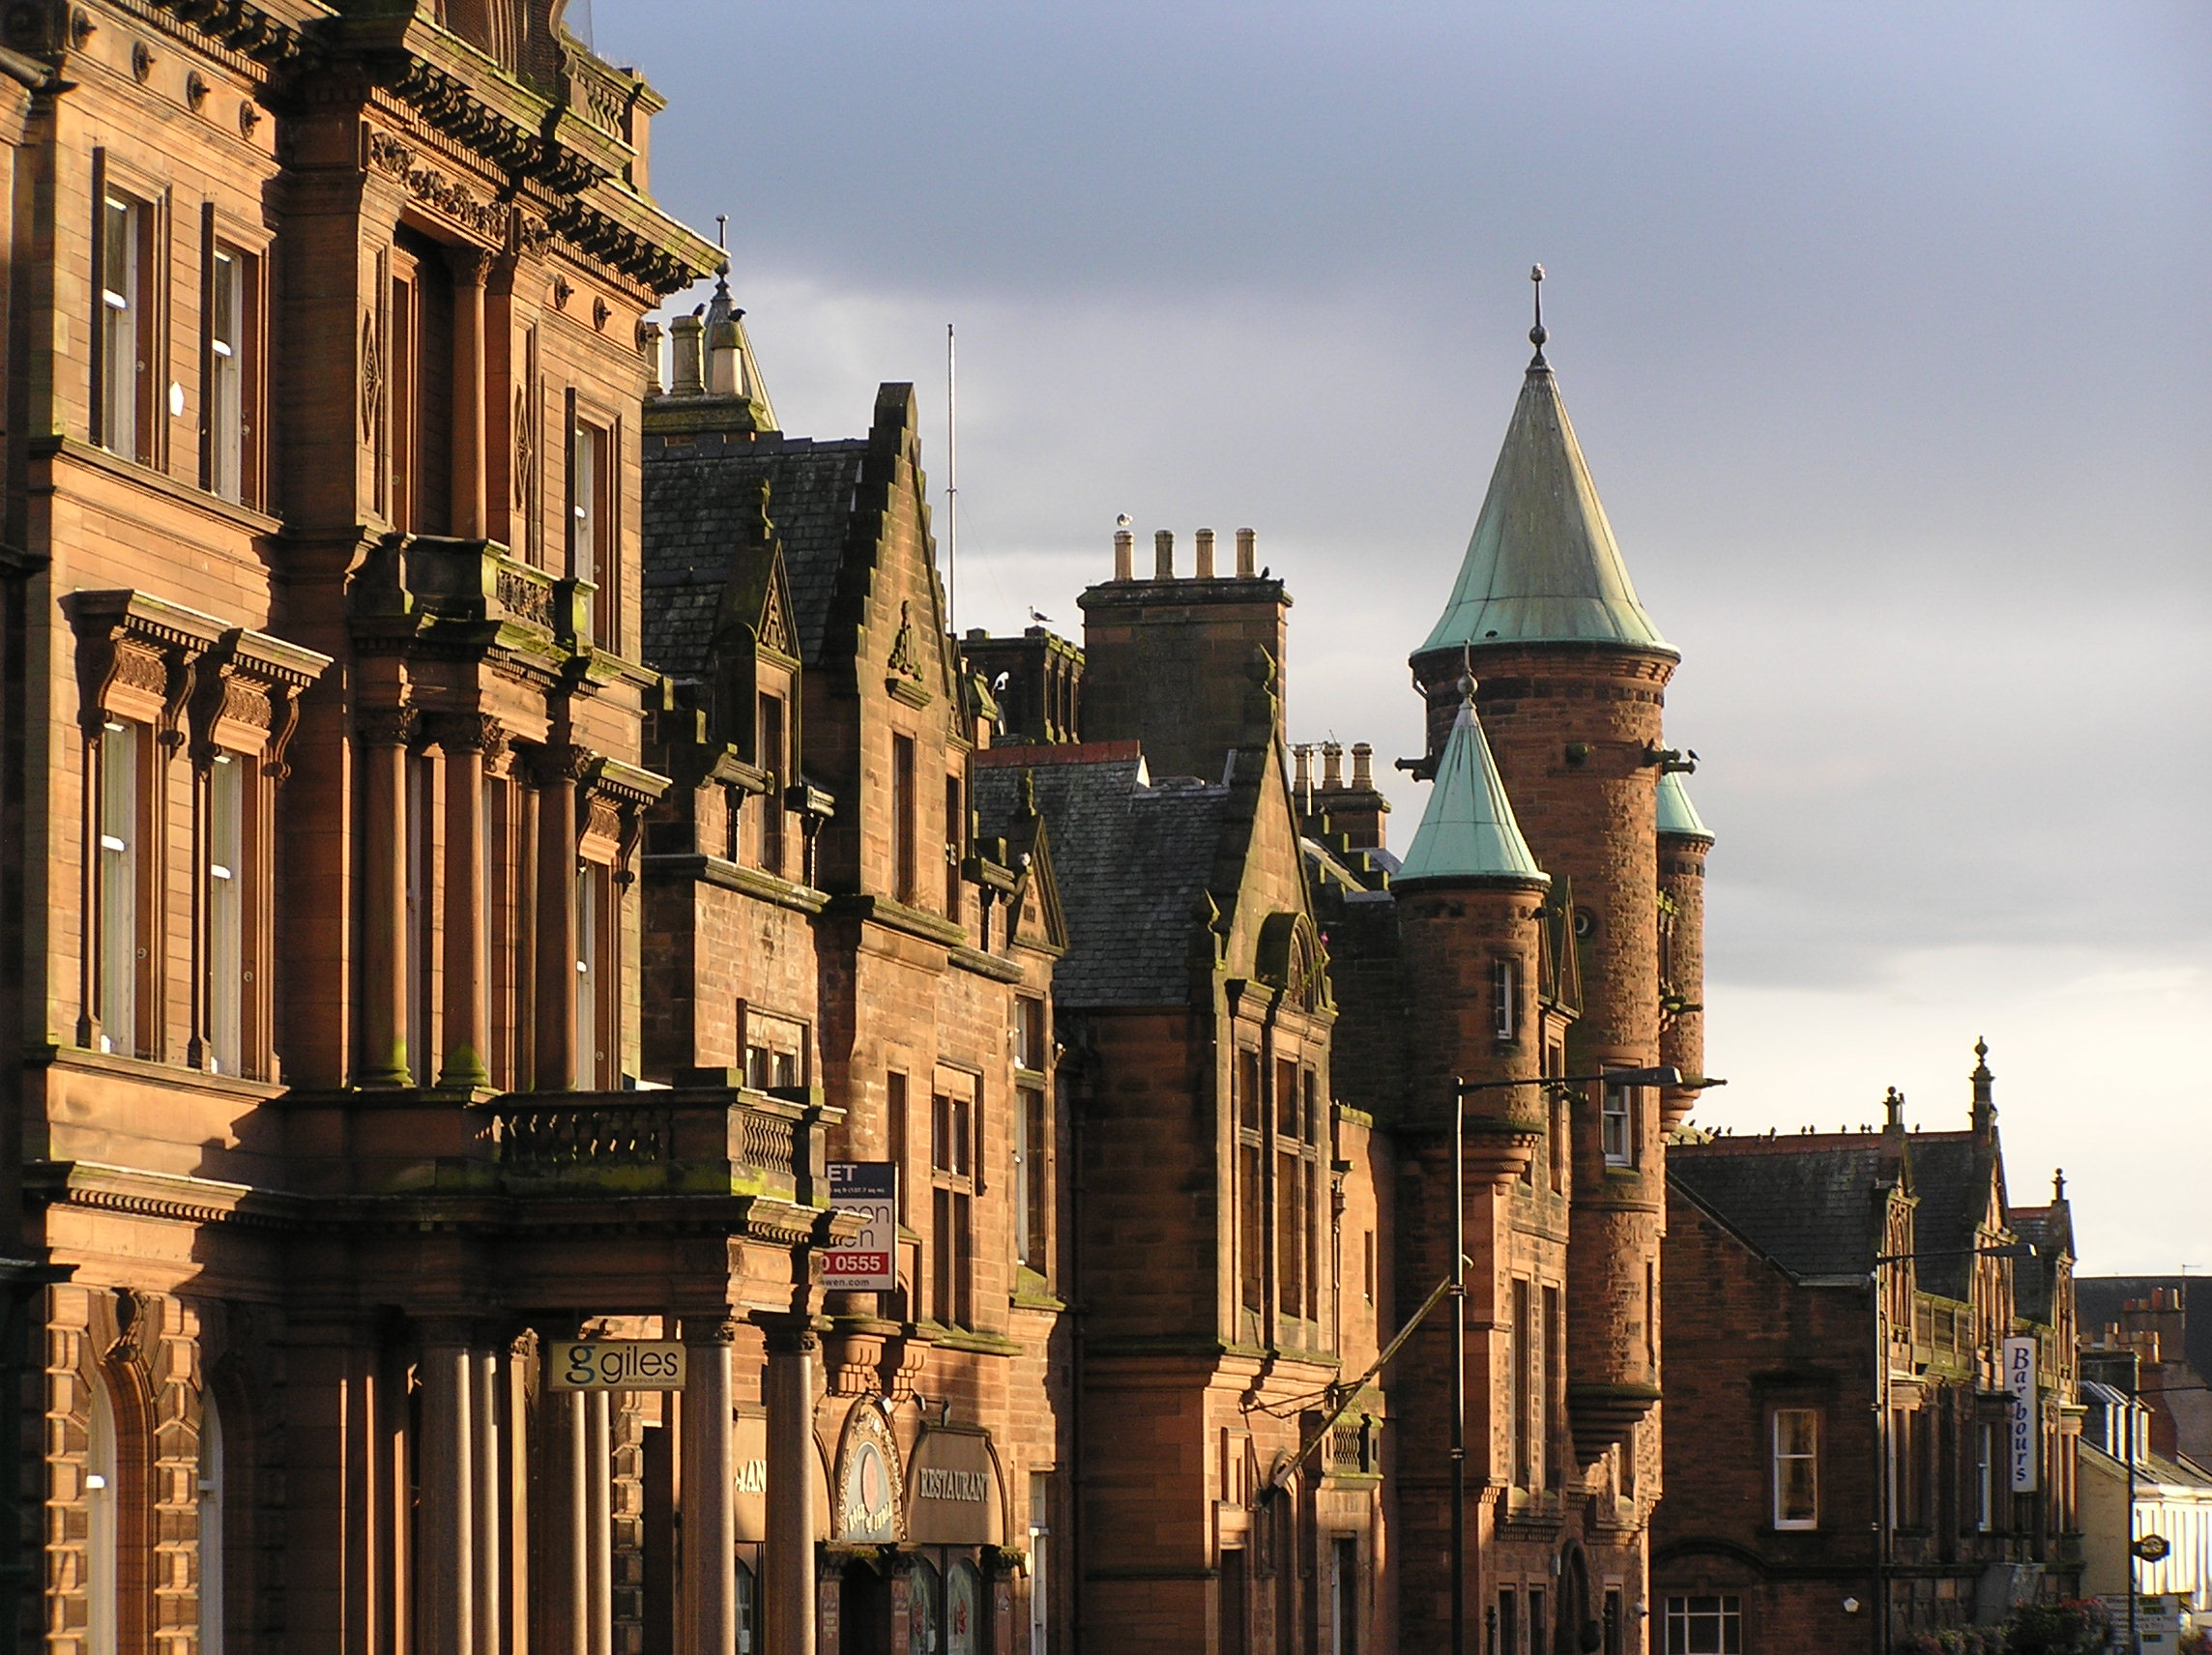 Dumfries And Galloway United Kingdom  City pictures : ecclefechan, Dumfries and Galloway, United Kingdom What happens in ...